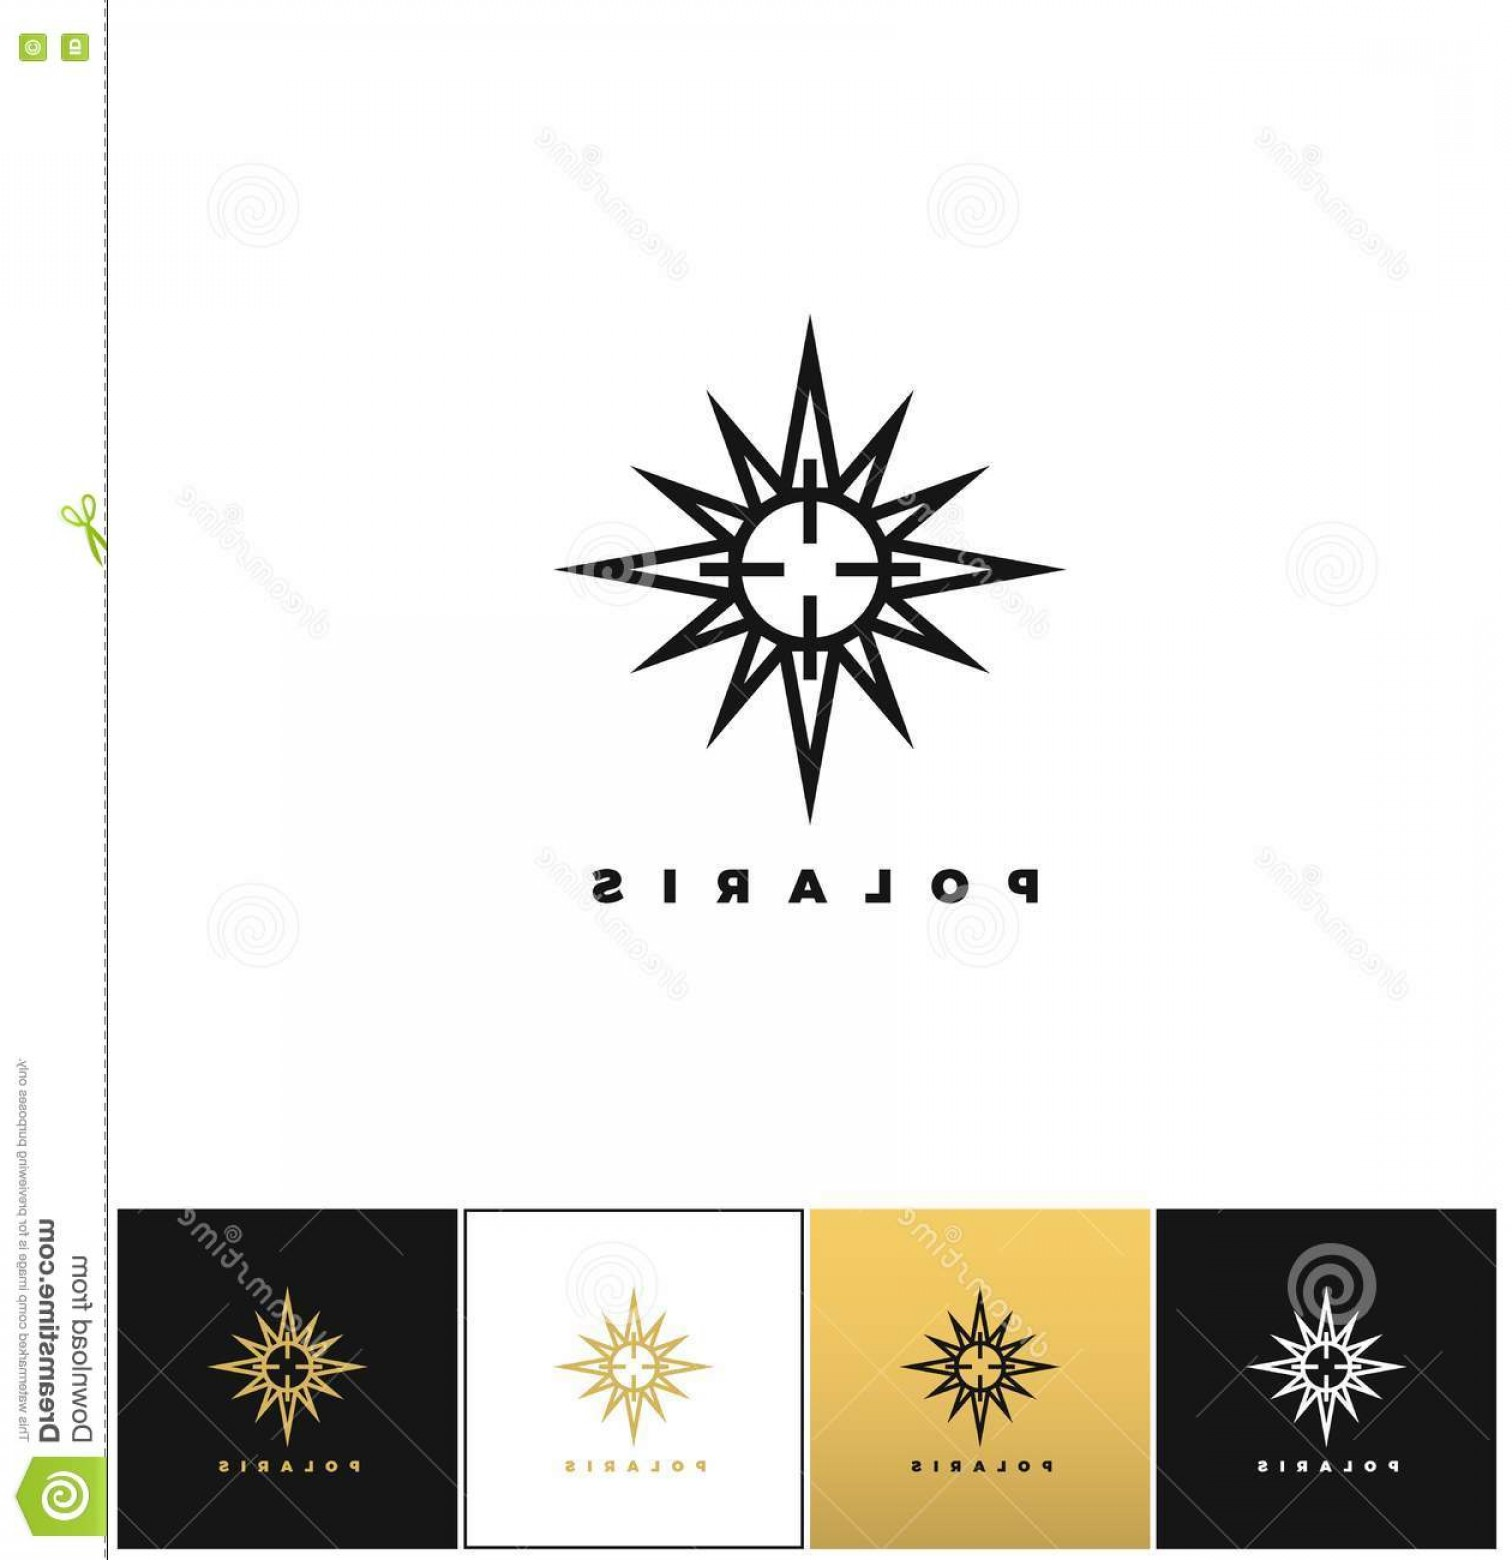 Polaris Star Logo Vector: Stock Illustration Abstract Space Star Logo Vector Icon Program Black White Gold Background Image